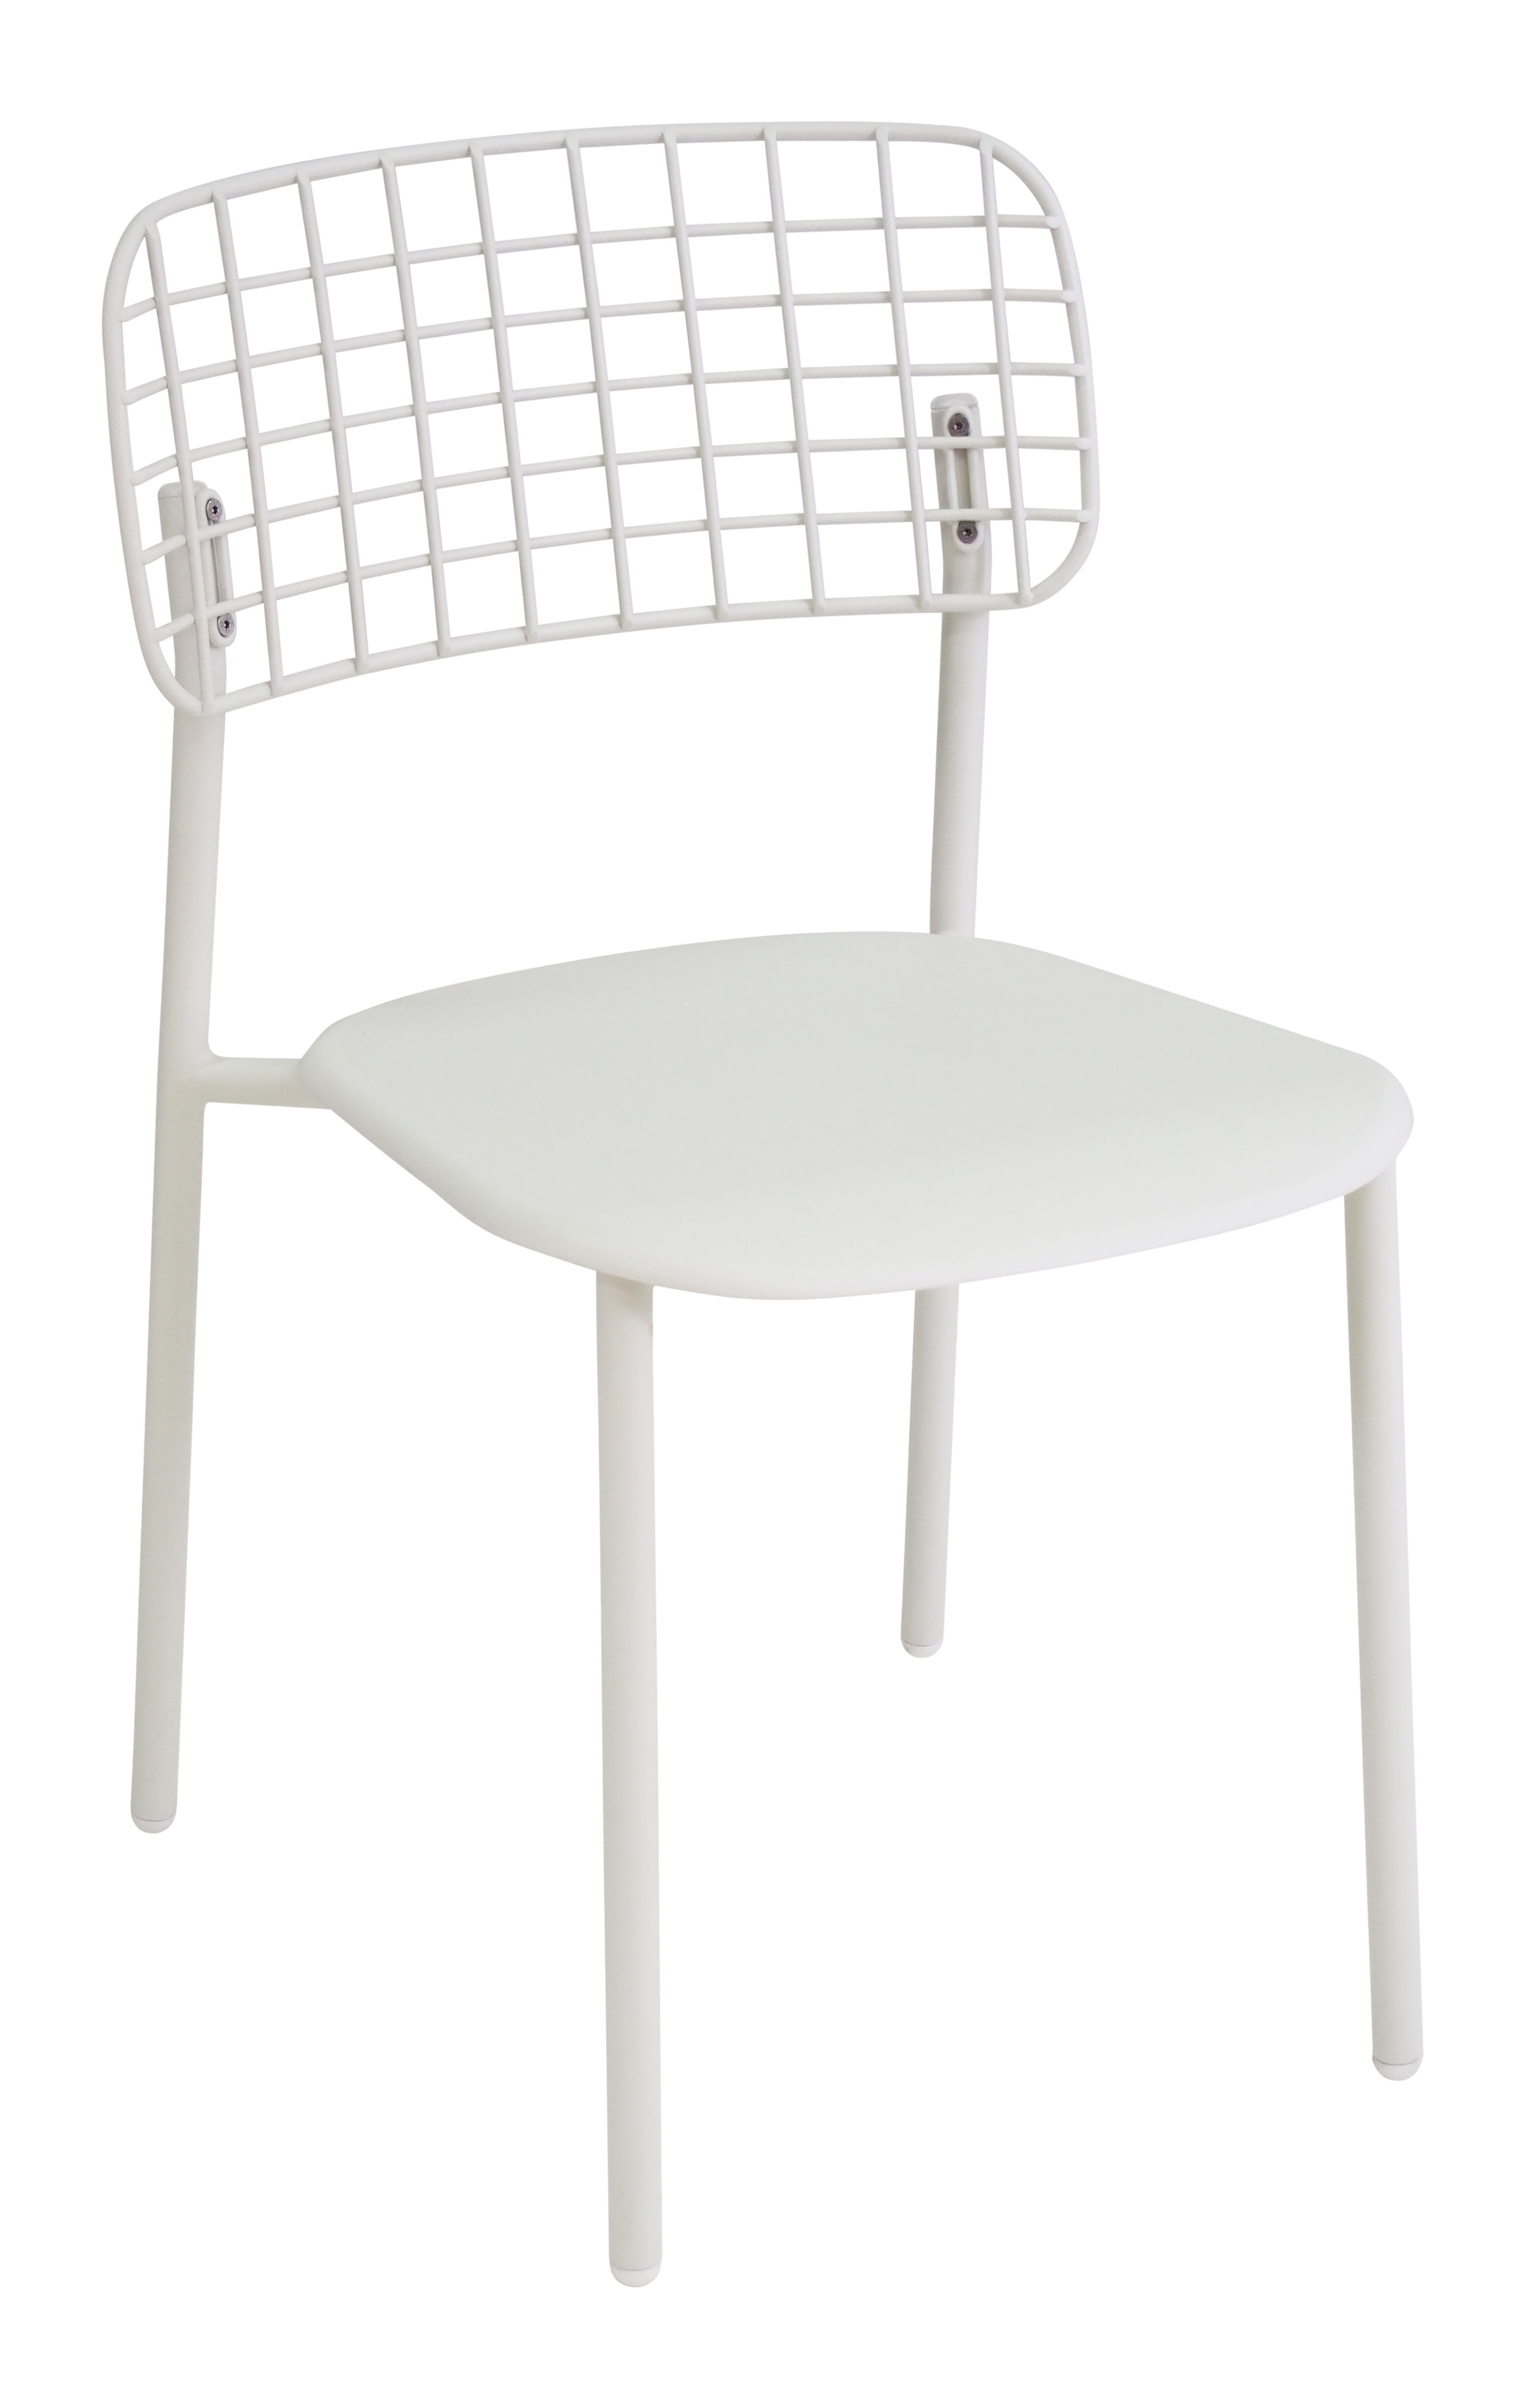 Furniture - Chairs - Lyze Stacking chair - Metal by Emu - Matt white - Varnished aluminium, Varnished stainless steel